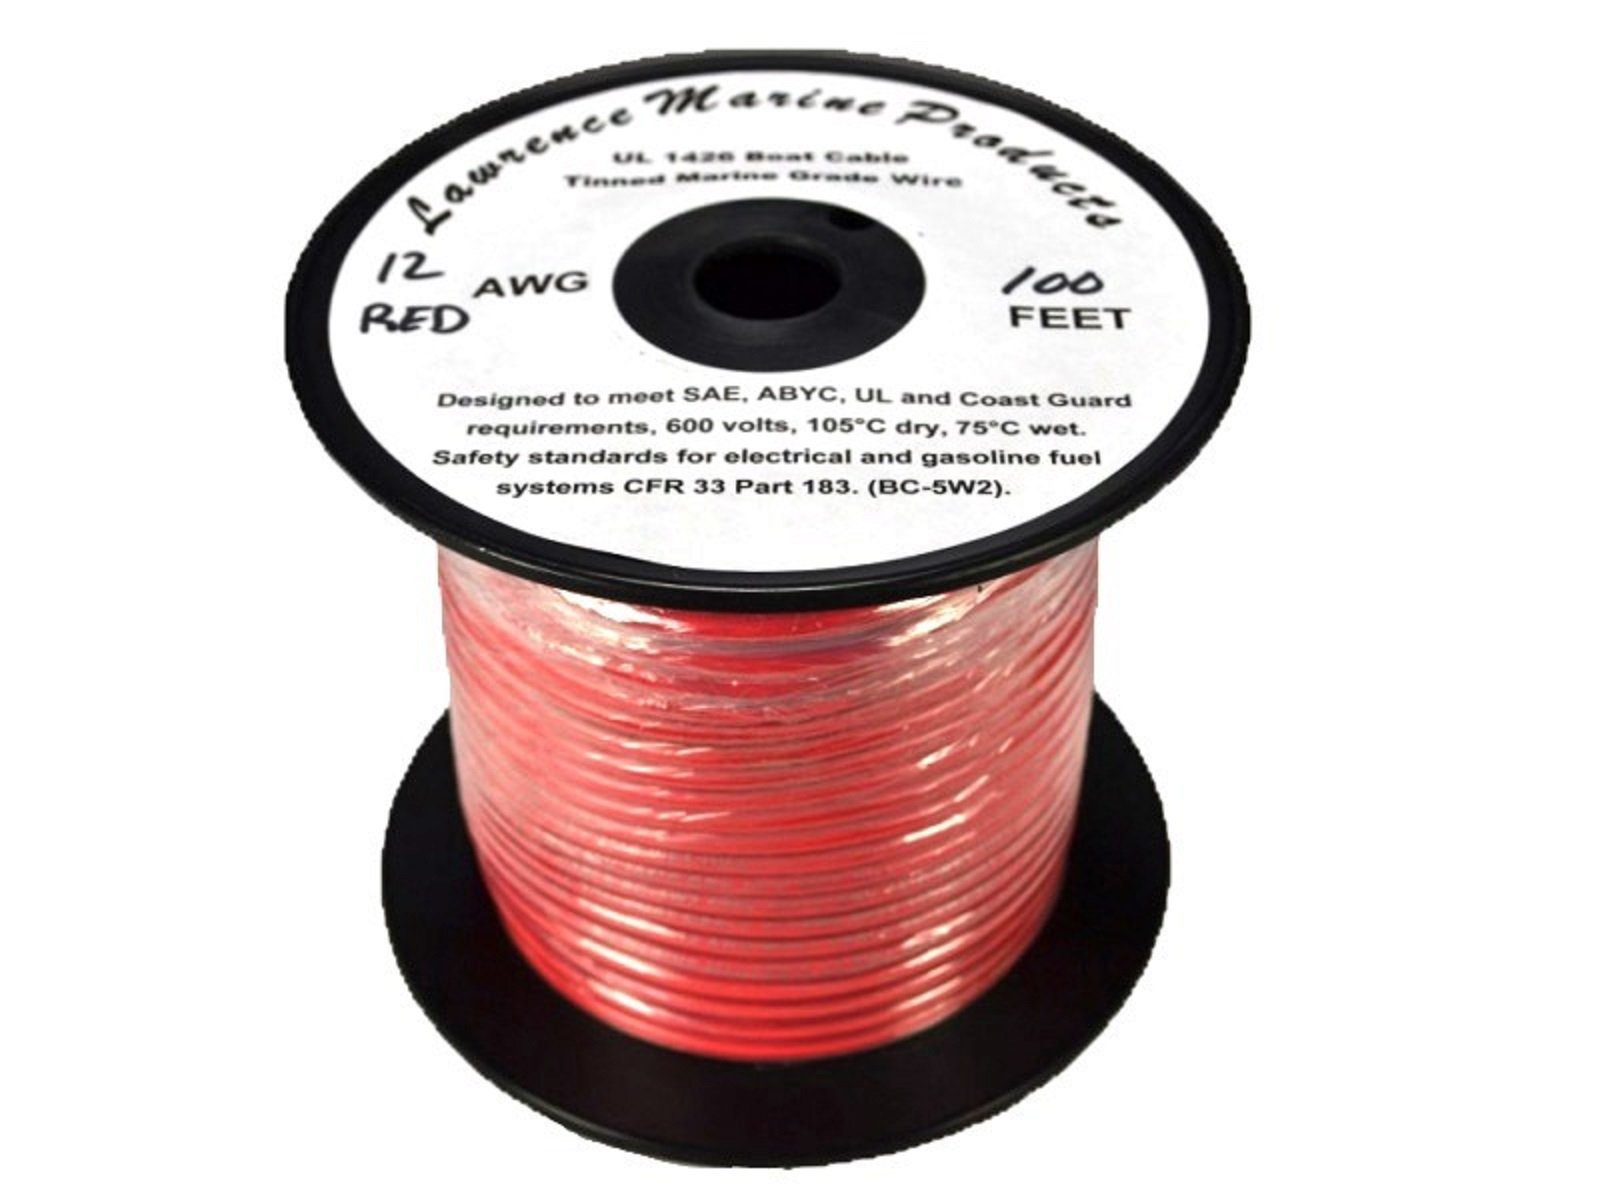 12 AWG Tinned Marine Primary Wire, Red, 100 Feet